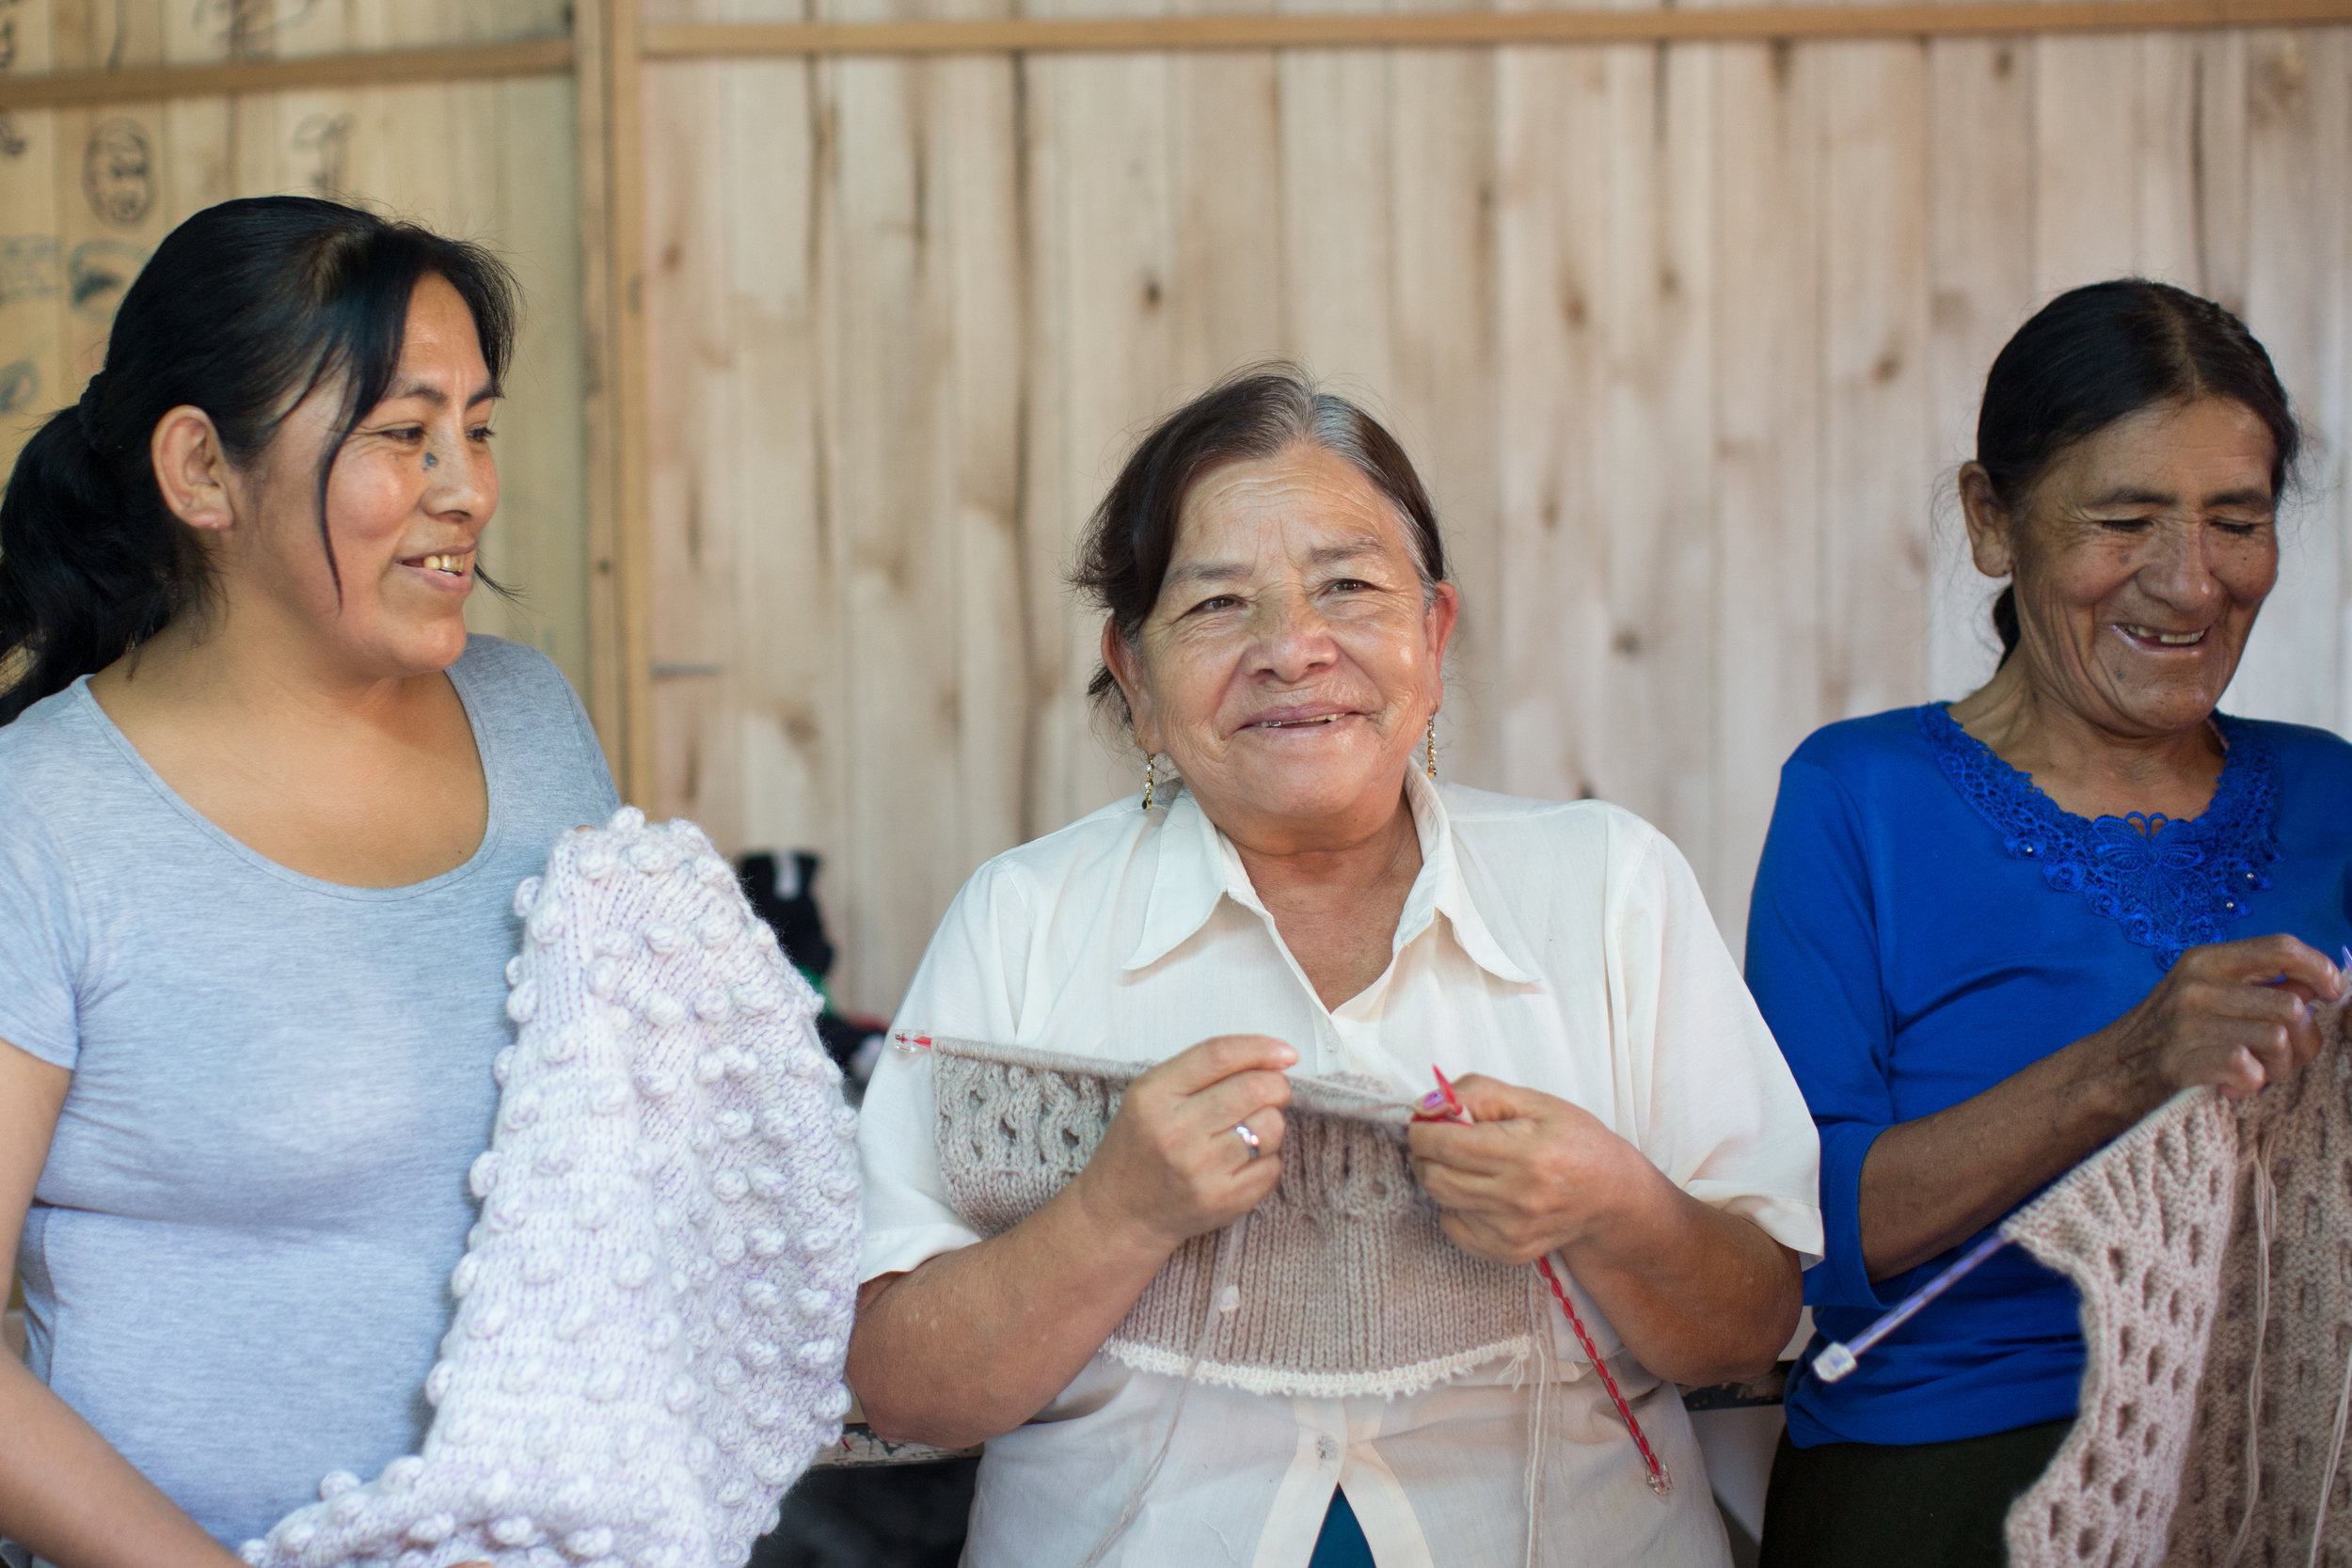 Meet artisan Judith (left) with her Mother (center) and Auntie (right) at a family run workshop on the outskirts of Lima. Her husband, brother-in-law and nephews work on the hand-flat knitting machines and the women-knit by hand. They are working on our Fall 18 production.